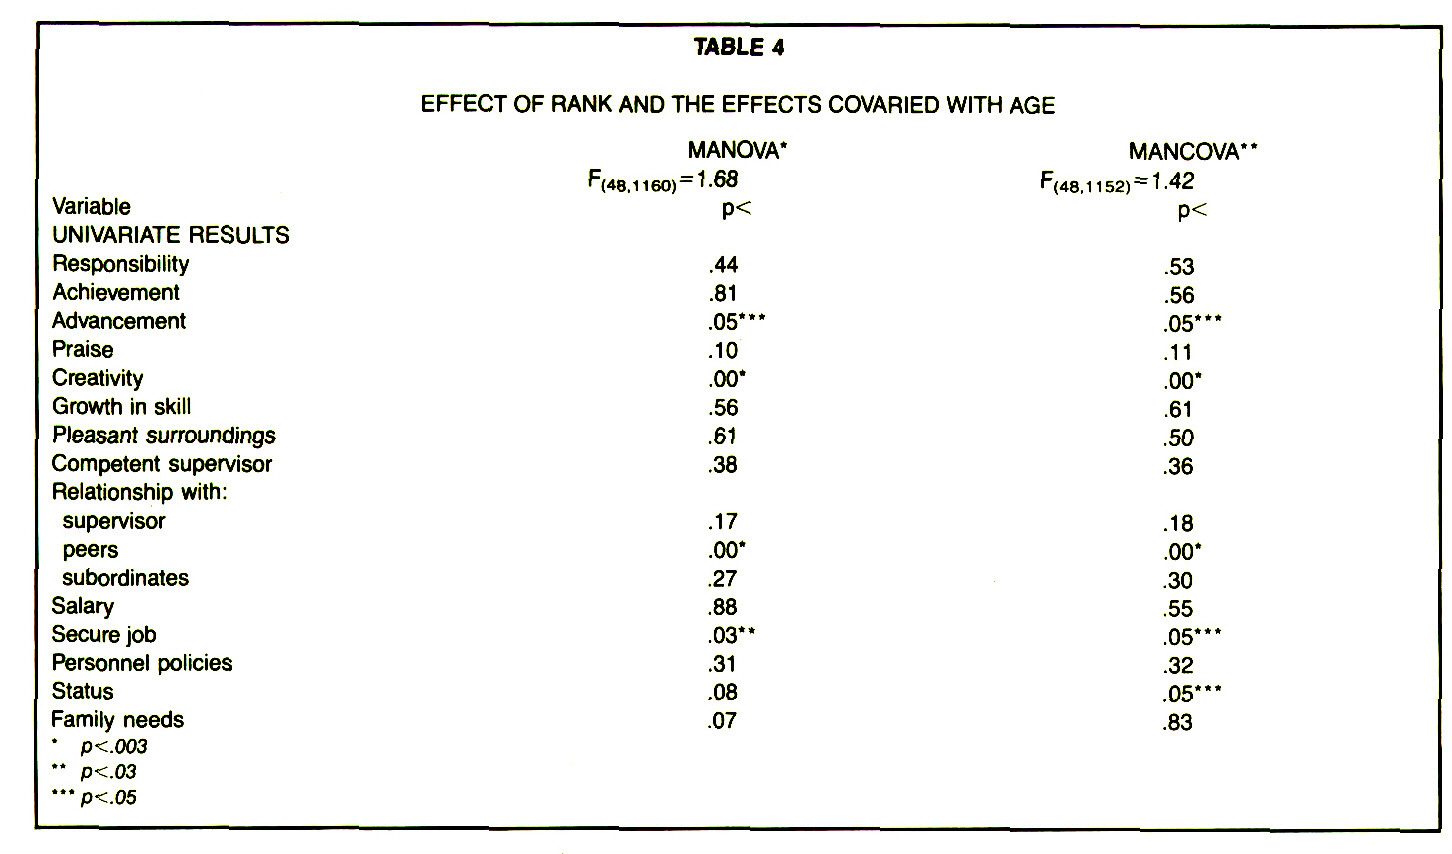 TABLE 4EFFECT OF RANK AND THE EFFECTS COVARIED WITH AGE